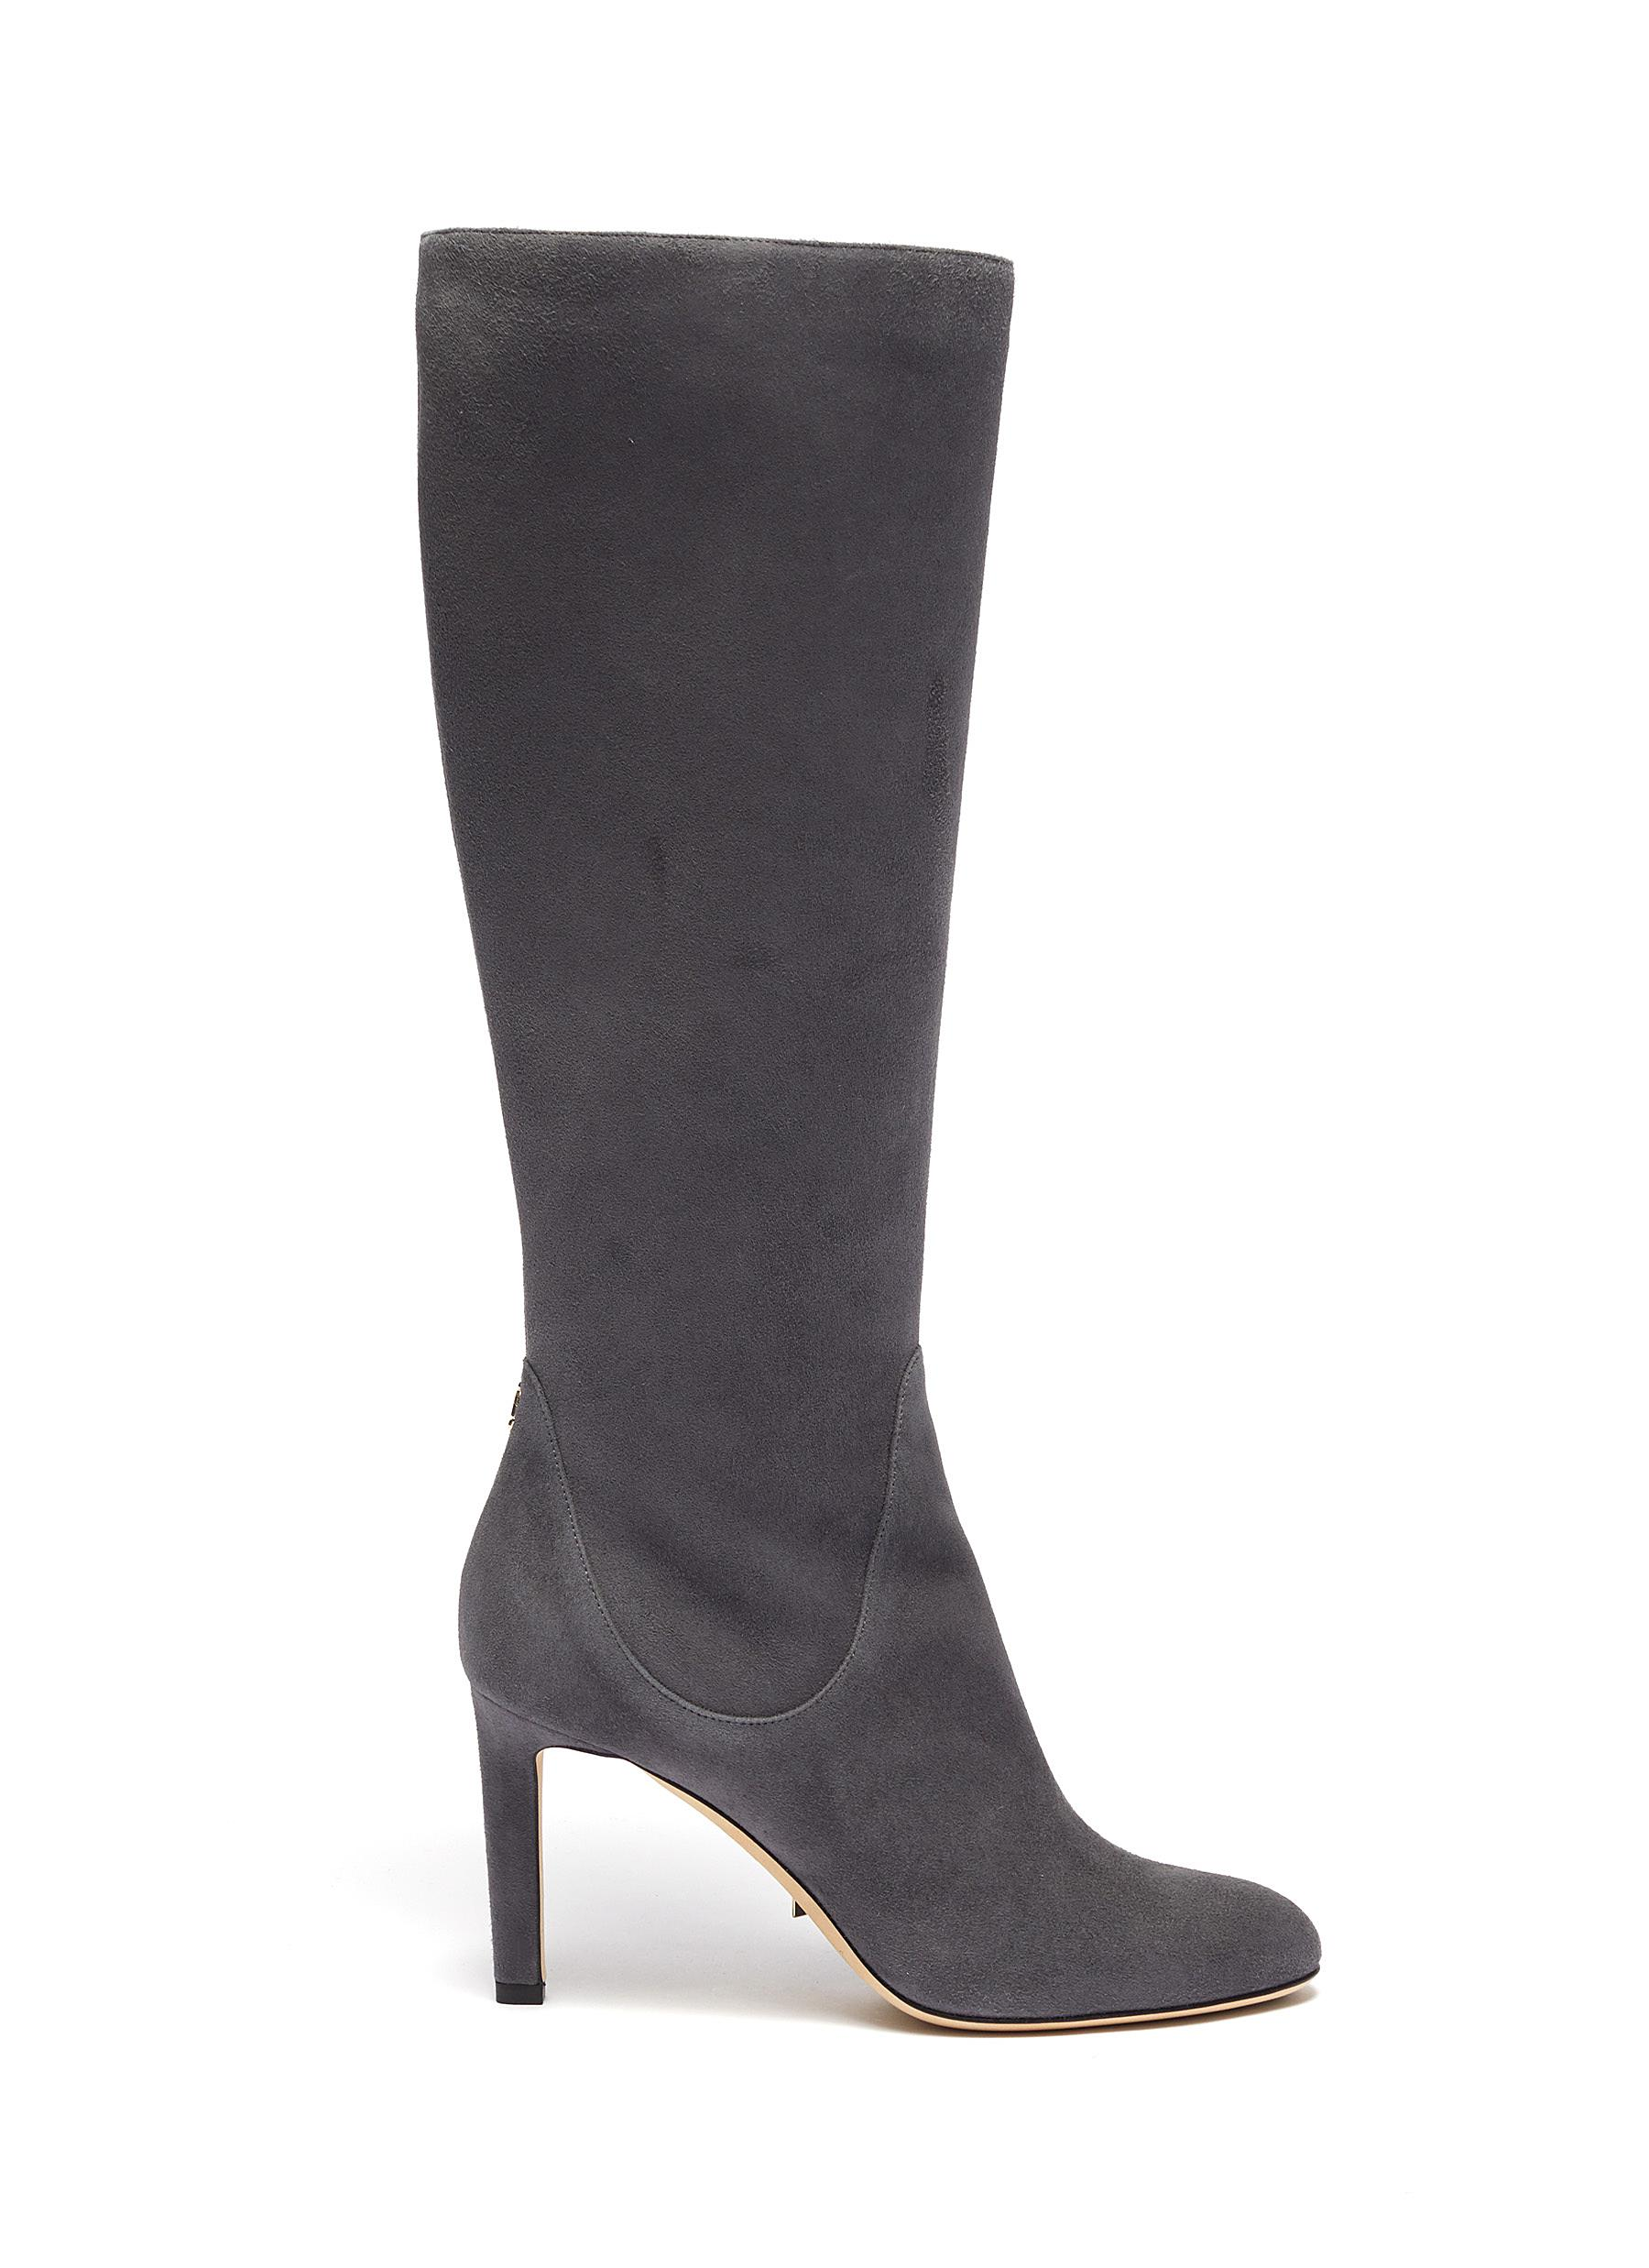 Tempe 85 suede knee high boots by Jimmy Choo